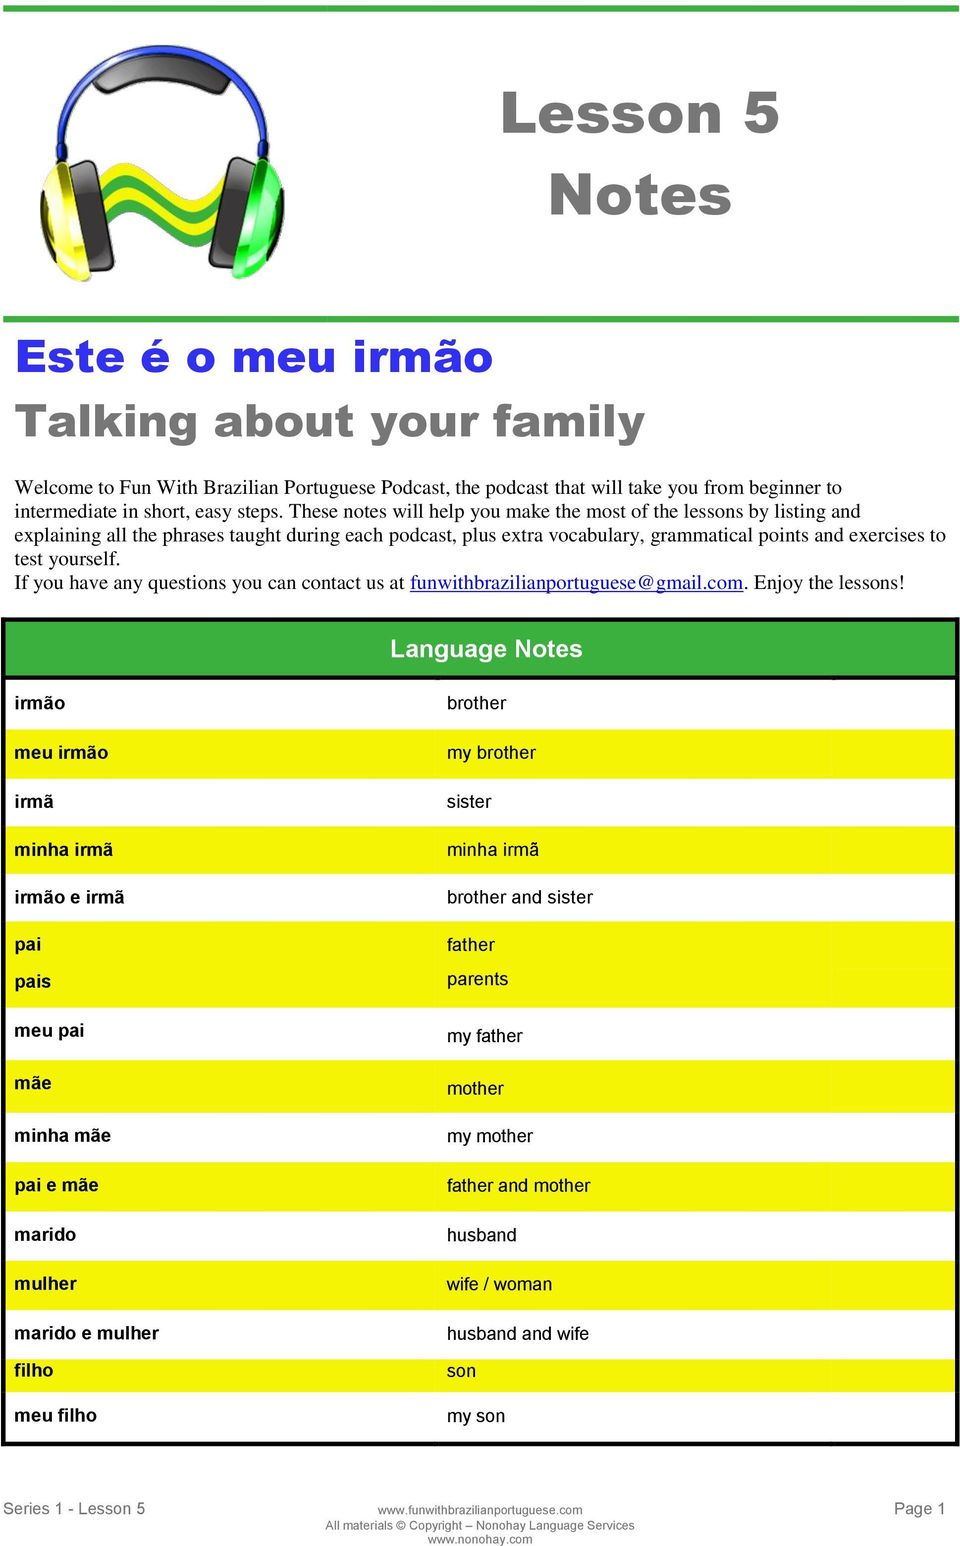 If you have any questions you can contact us at funwithbrazilianportuguese@gmail.com. Enjoy the lessons!